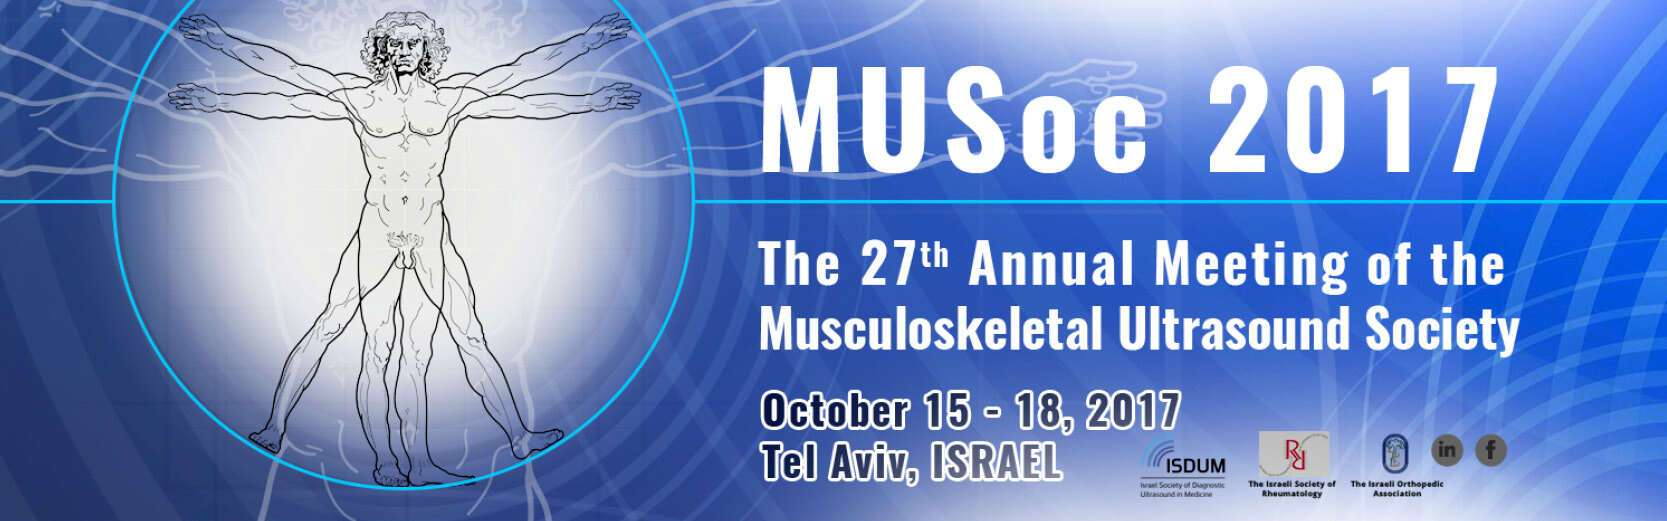 MUSoc 2017 – The 27th Annual Meeting of the Musculokeletal Ultrasound Society, October 15-18, 2017, Tel Aviv, Israel